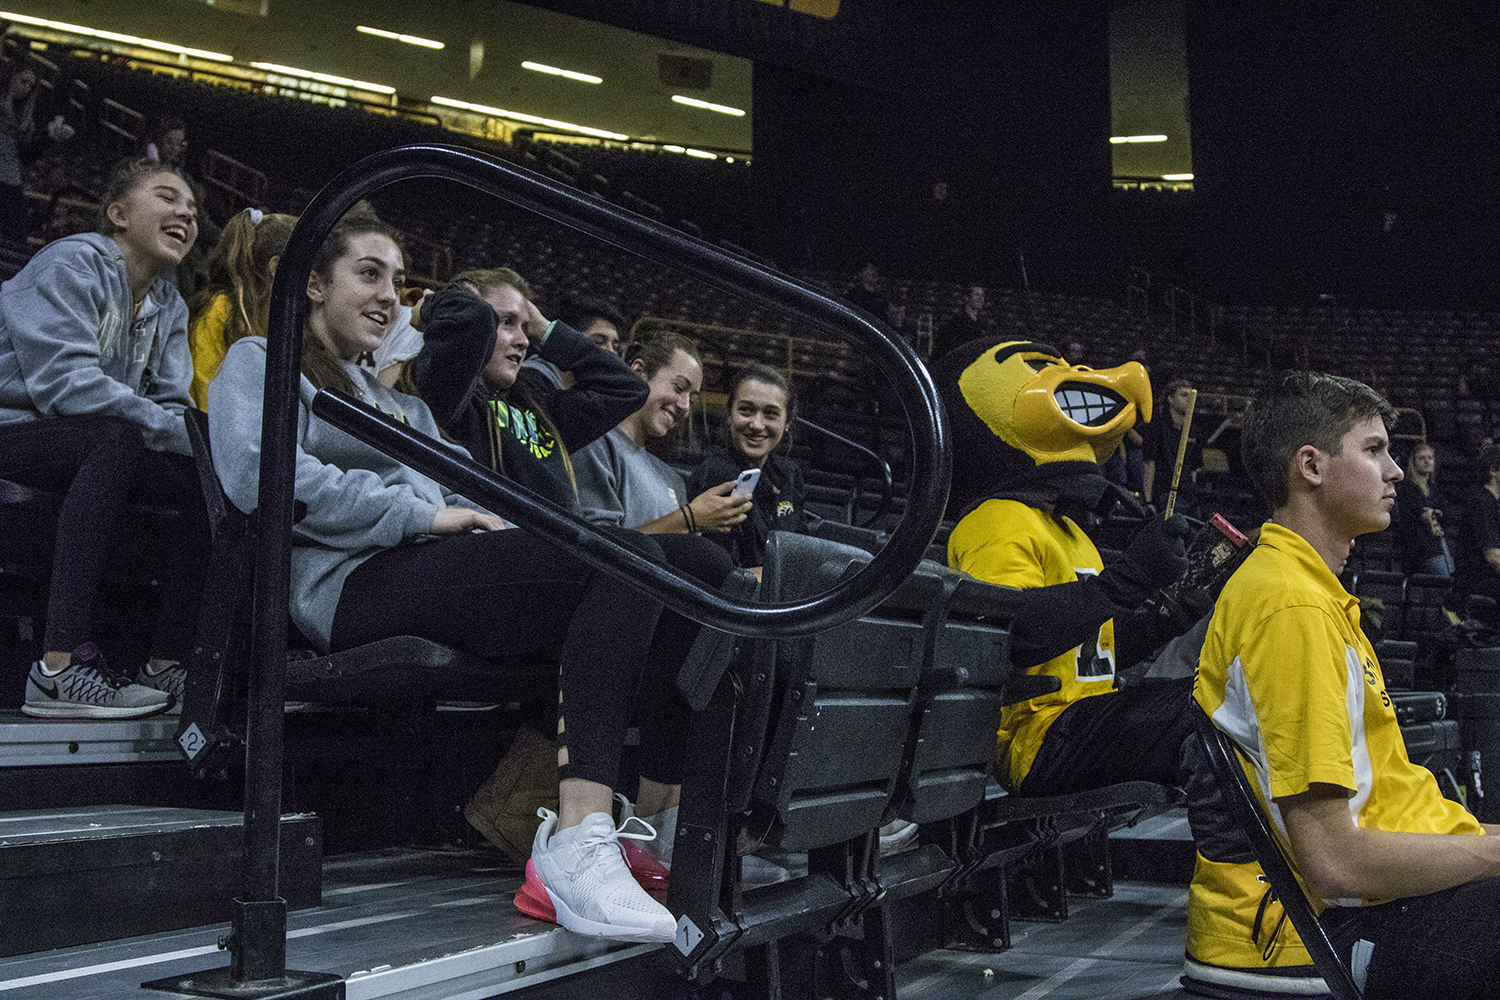 Herky+sits+alongside+fans+during+a+volleyball+match+between+Iowa+and+Penn+State+at+Carver-Hawkeye+Arena+on+Saturday%2C+Nov.+3%2C+2018.+The+Hawkeyes+were+shut+out+by+the+Nittany+Lions%2C+3-0.